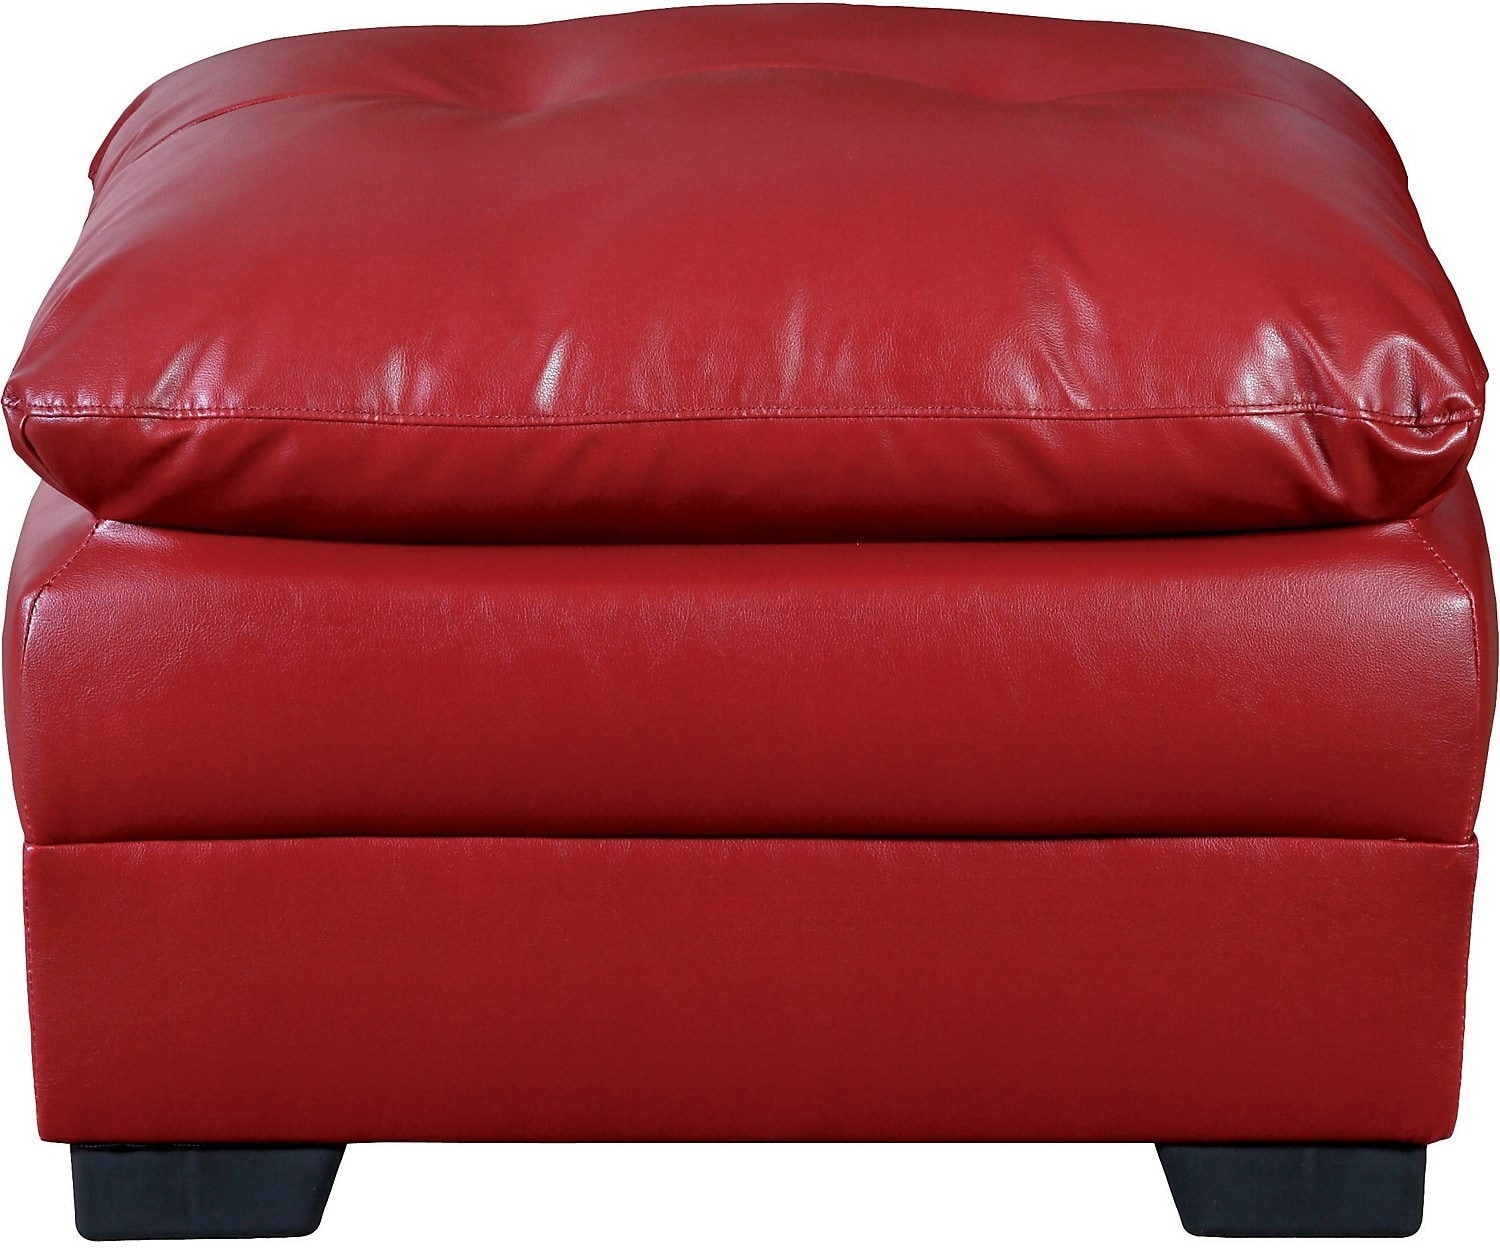 Living Room Furniture - E6 Red Bonded Leather Ottoman